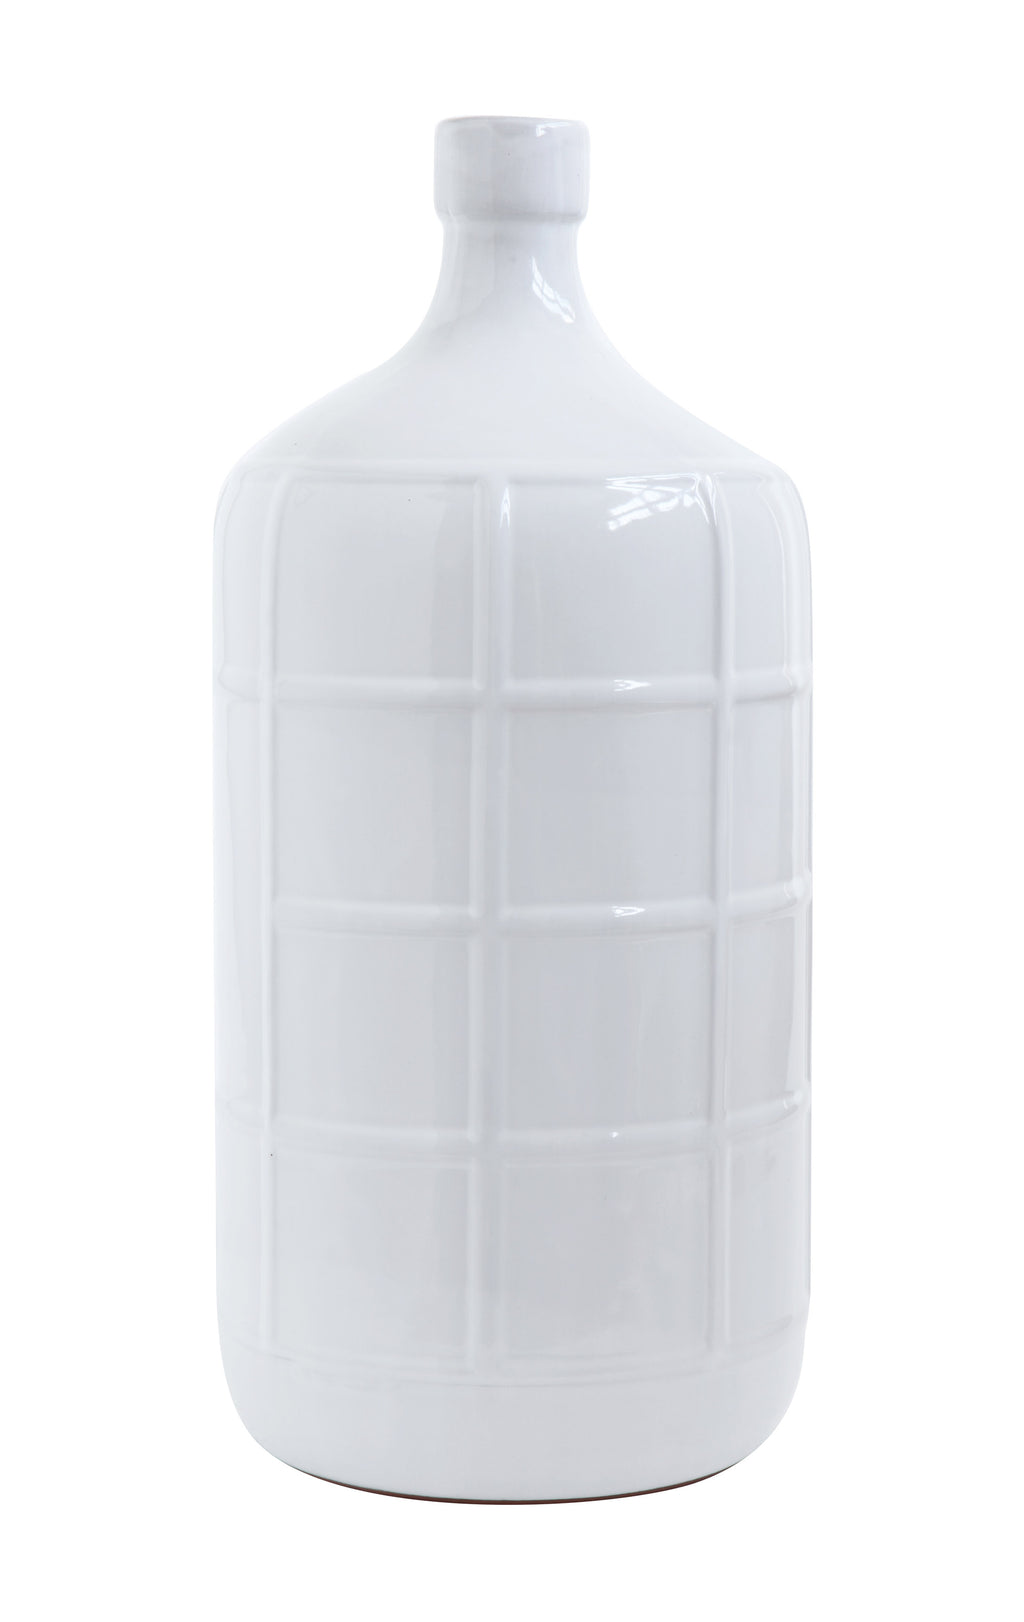 White Bottle Vase with Square Design